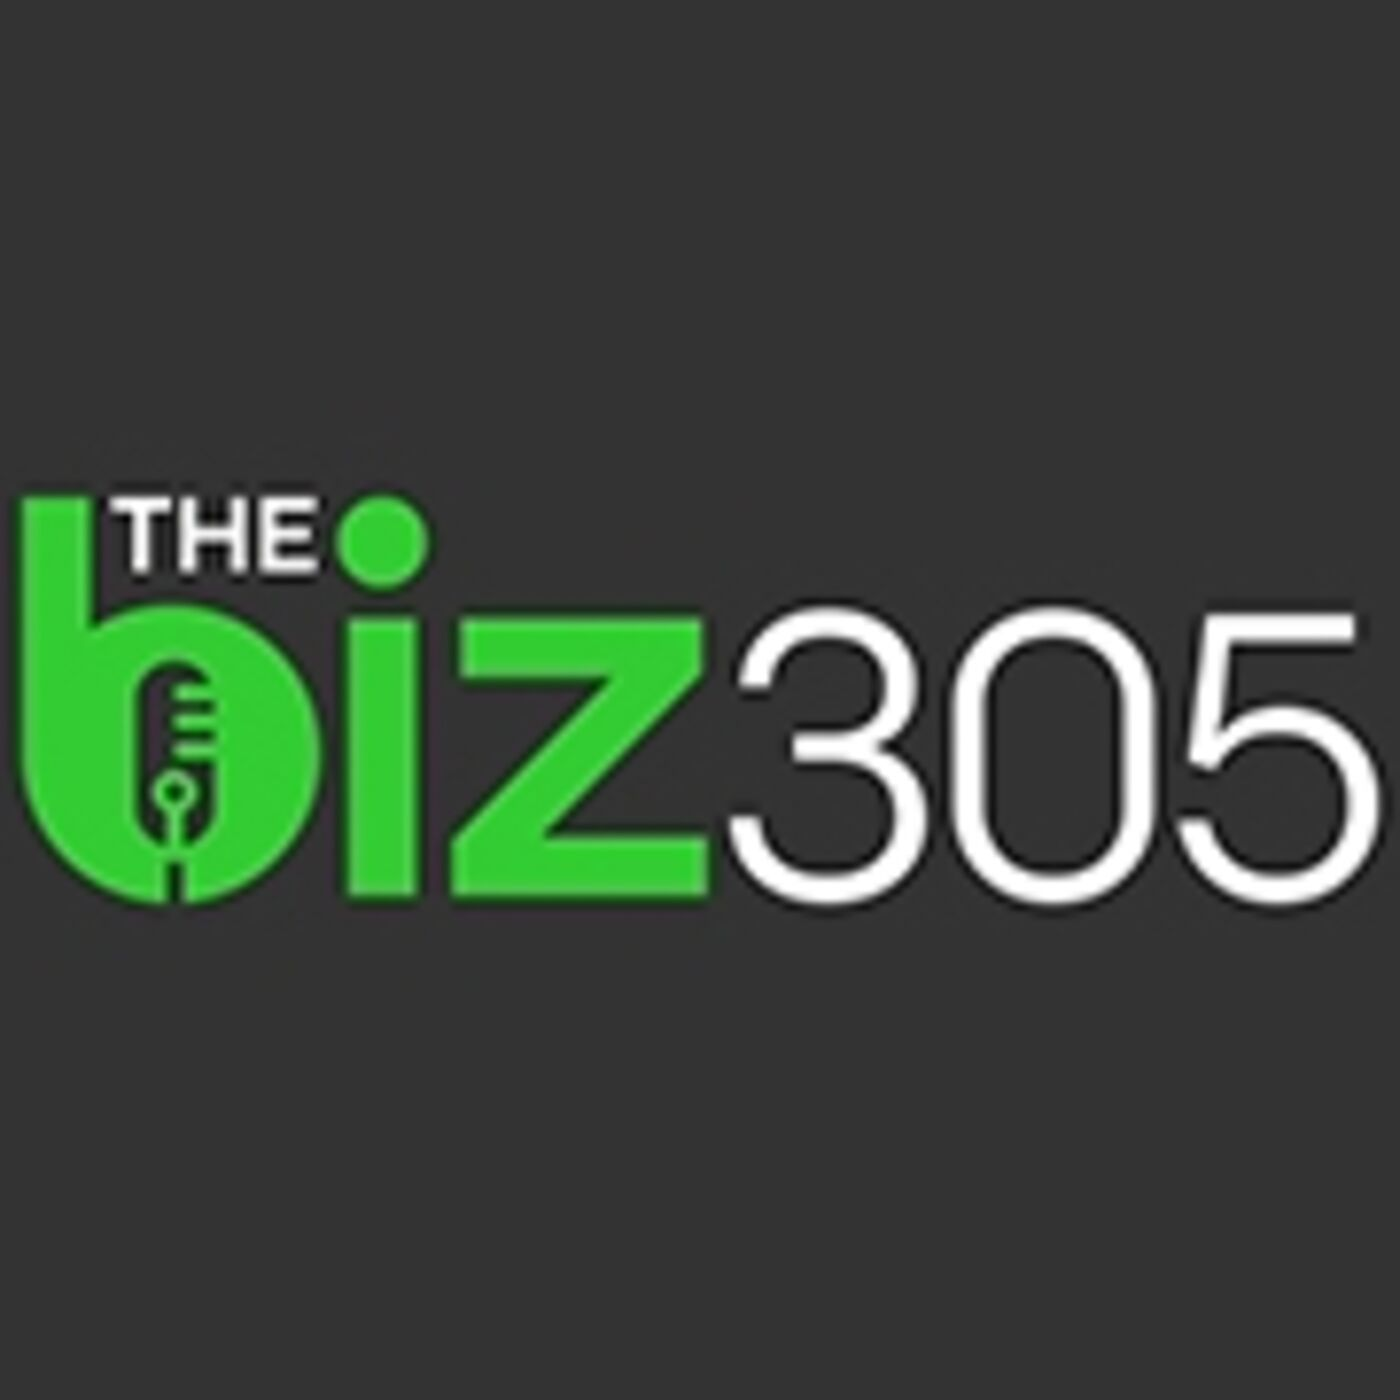 BIZ 305 features The Stares Group - Jose Tee Ares   Whilly Bermudez